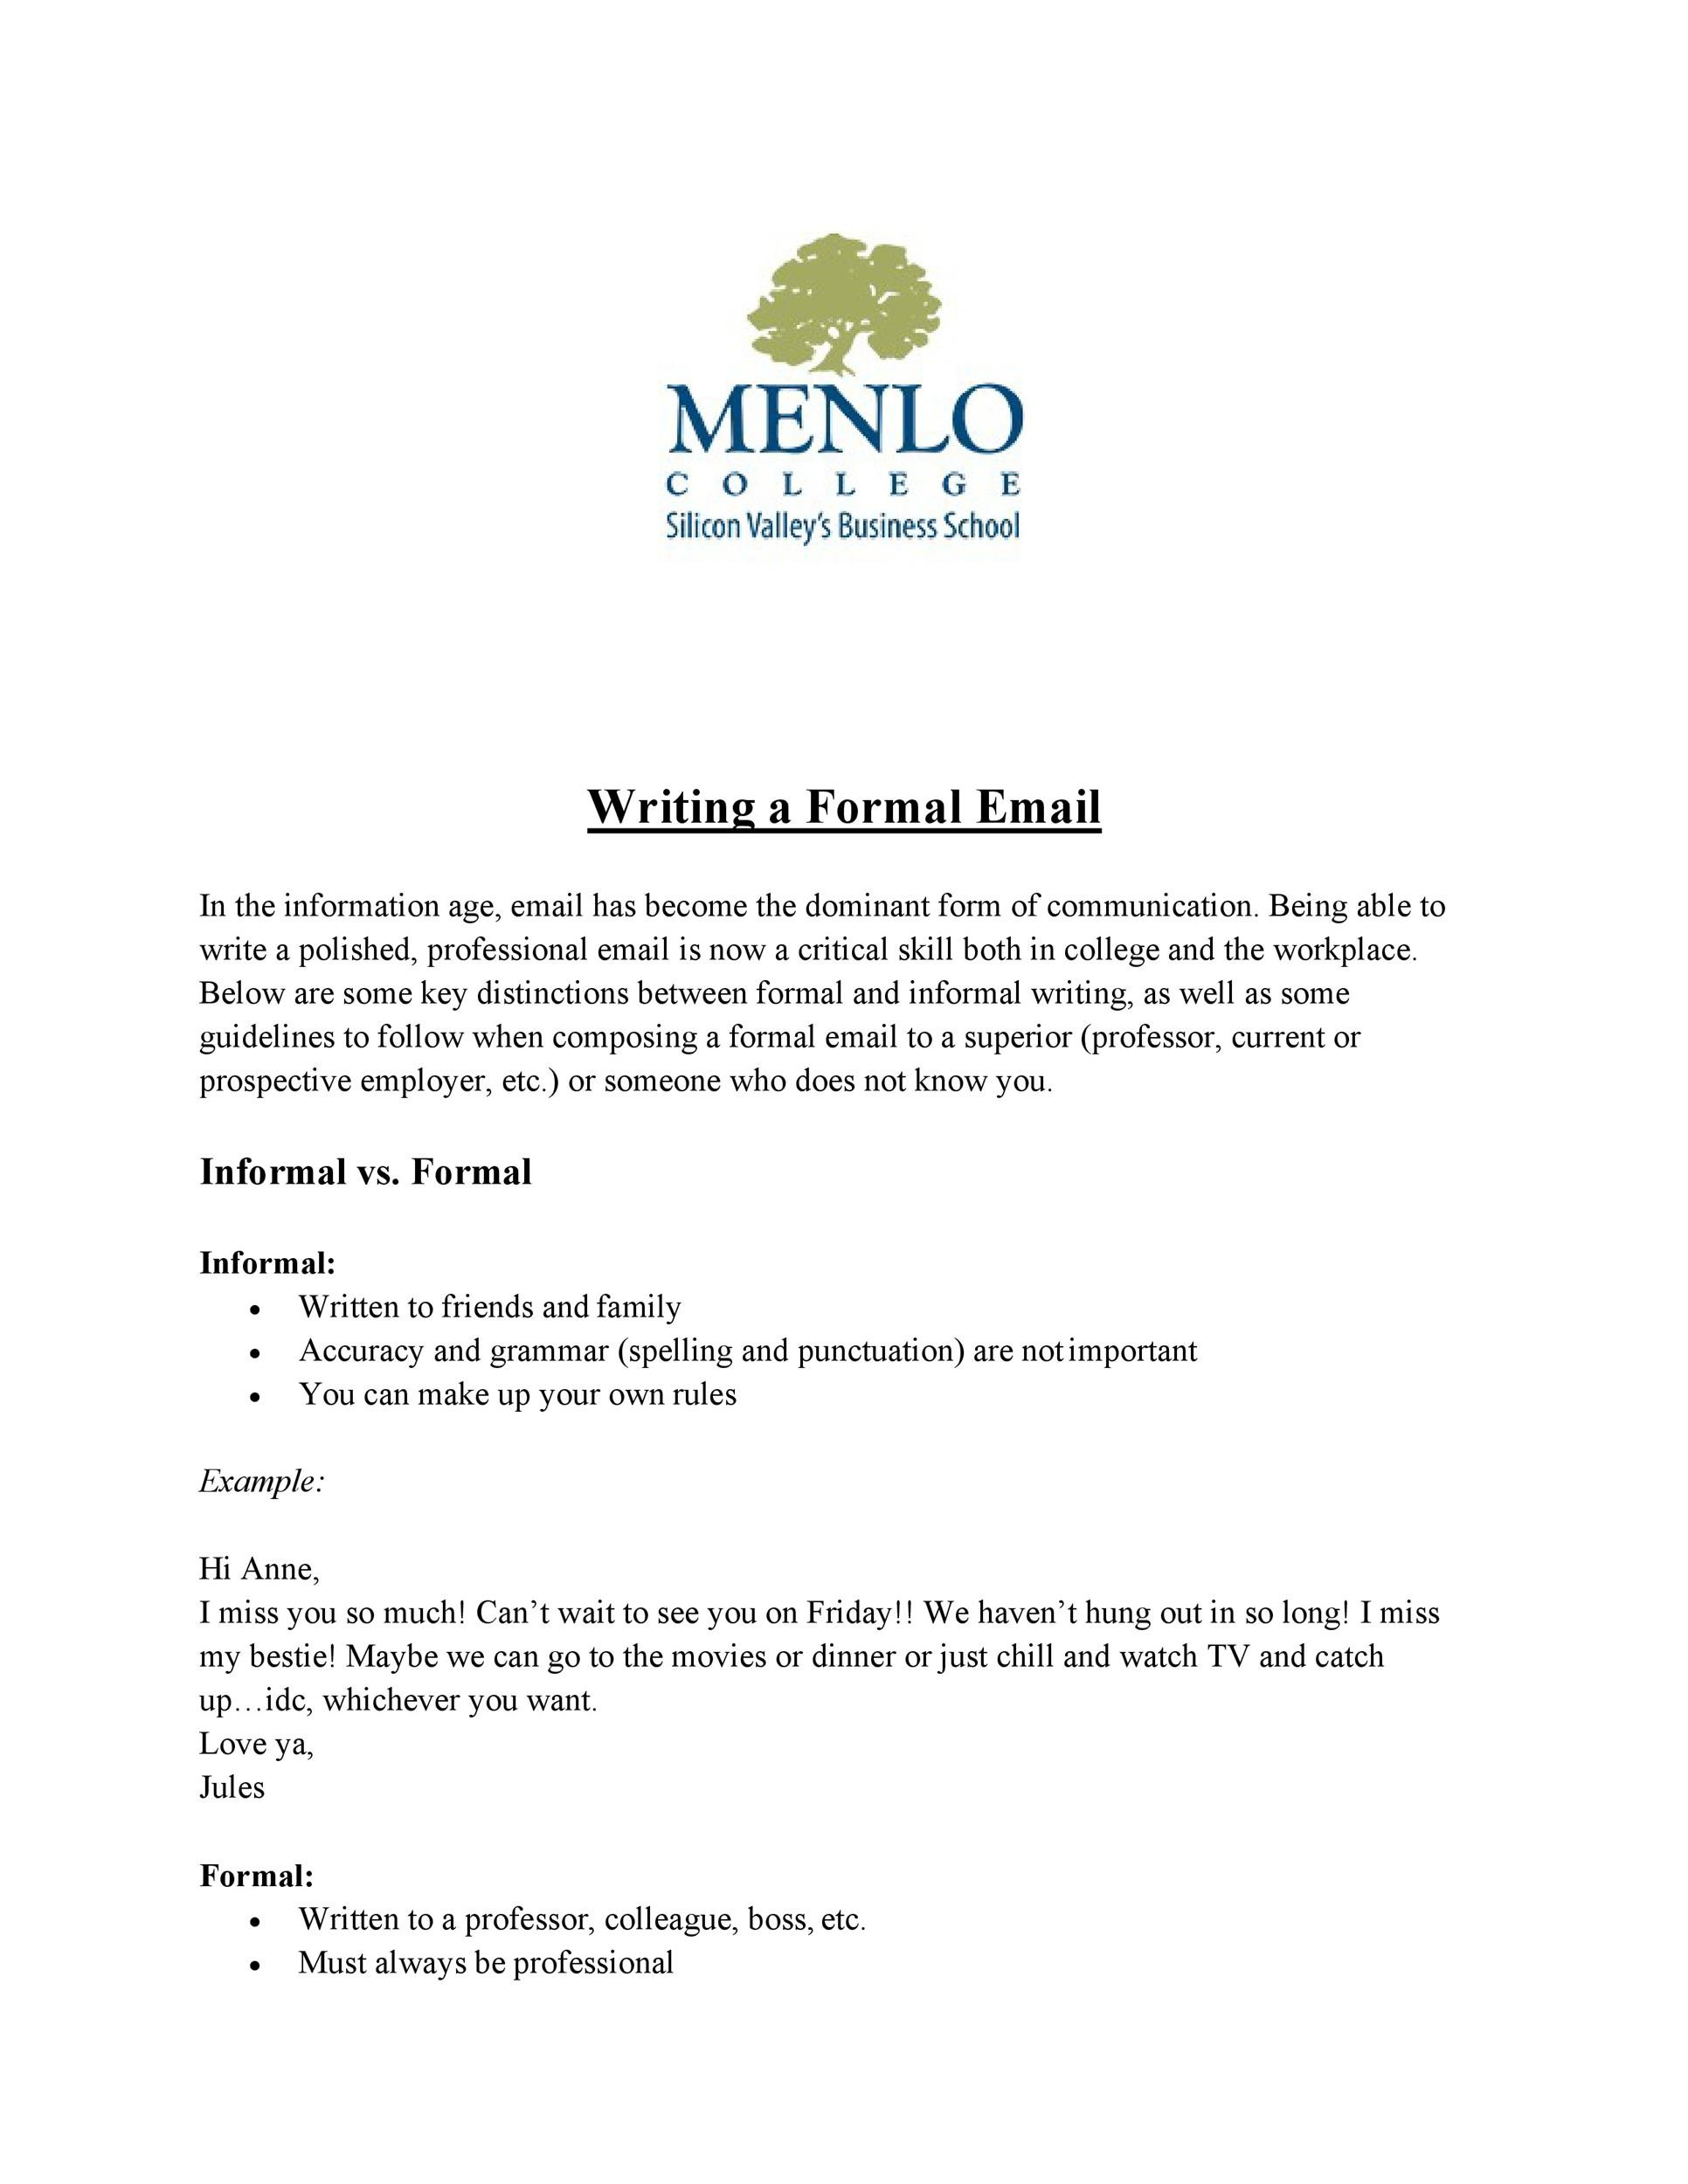 Free professional email example 02